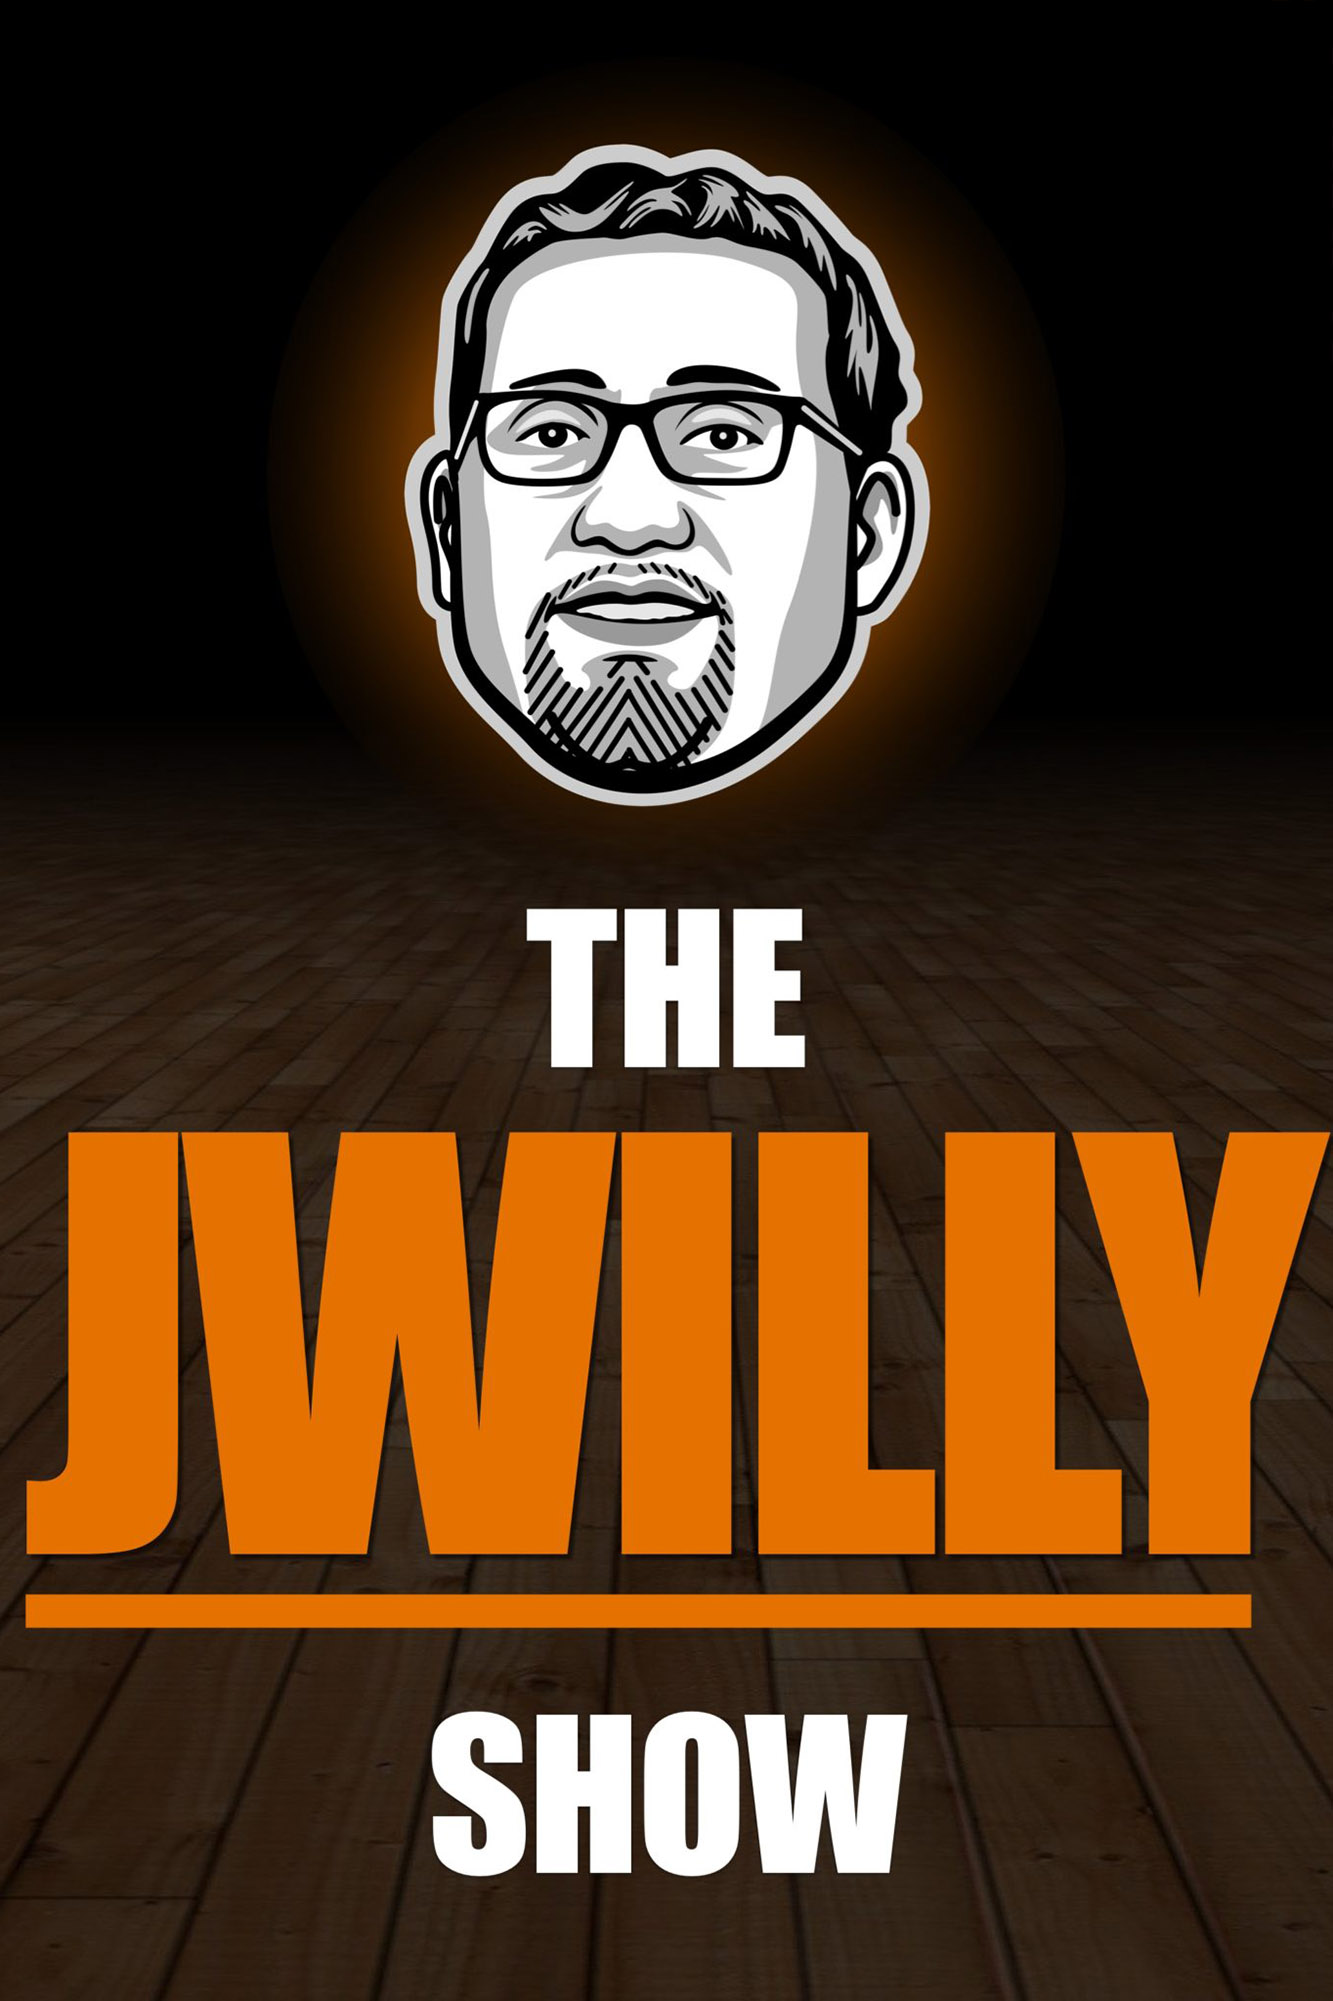 The J-Willy Show